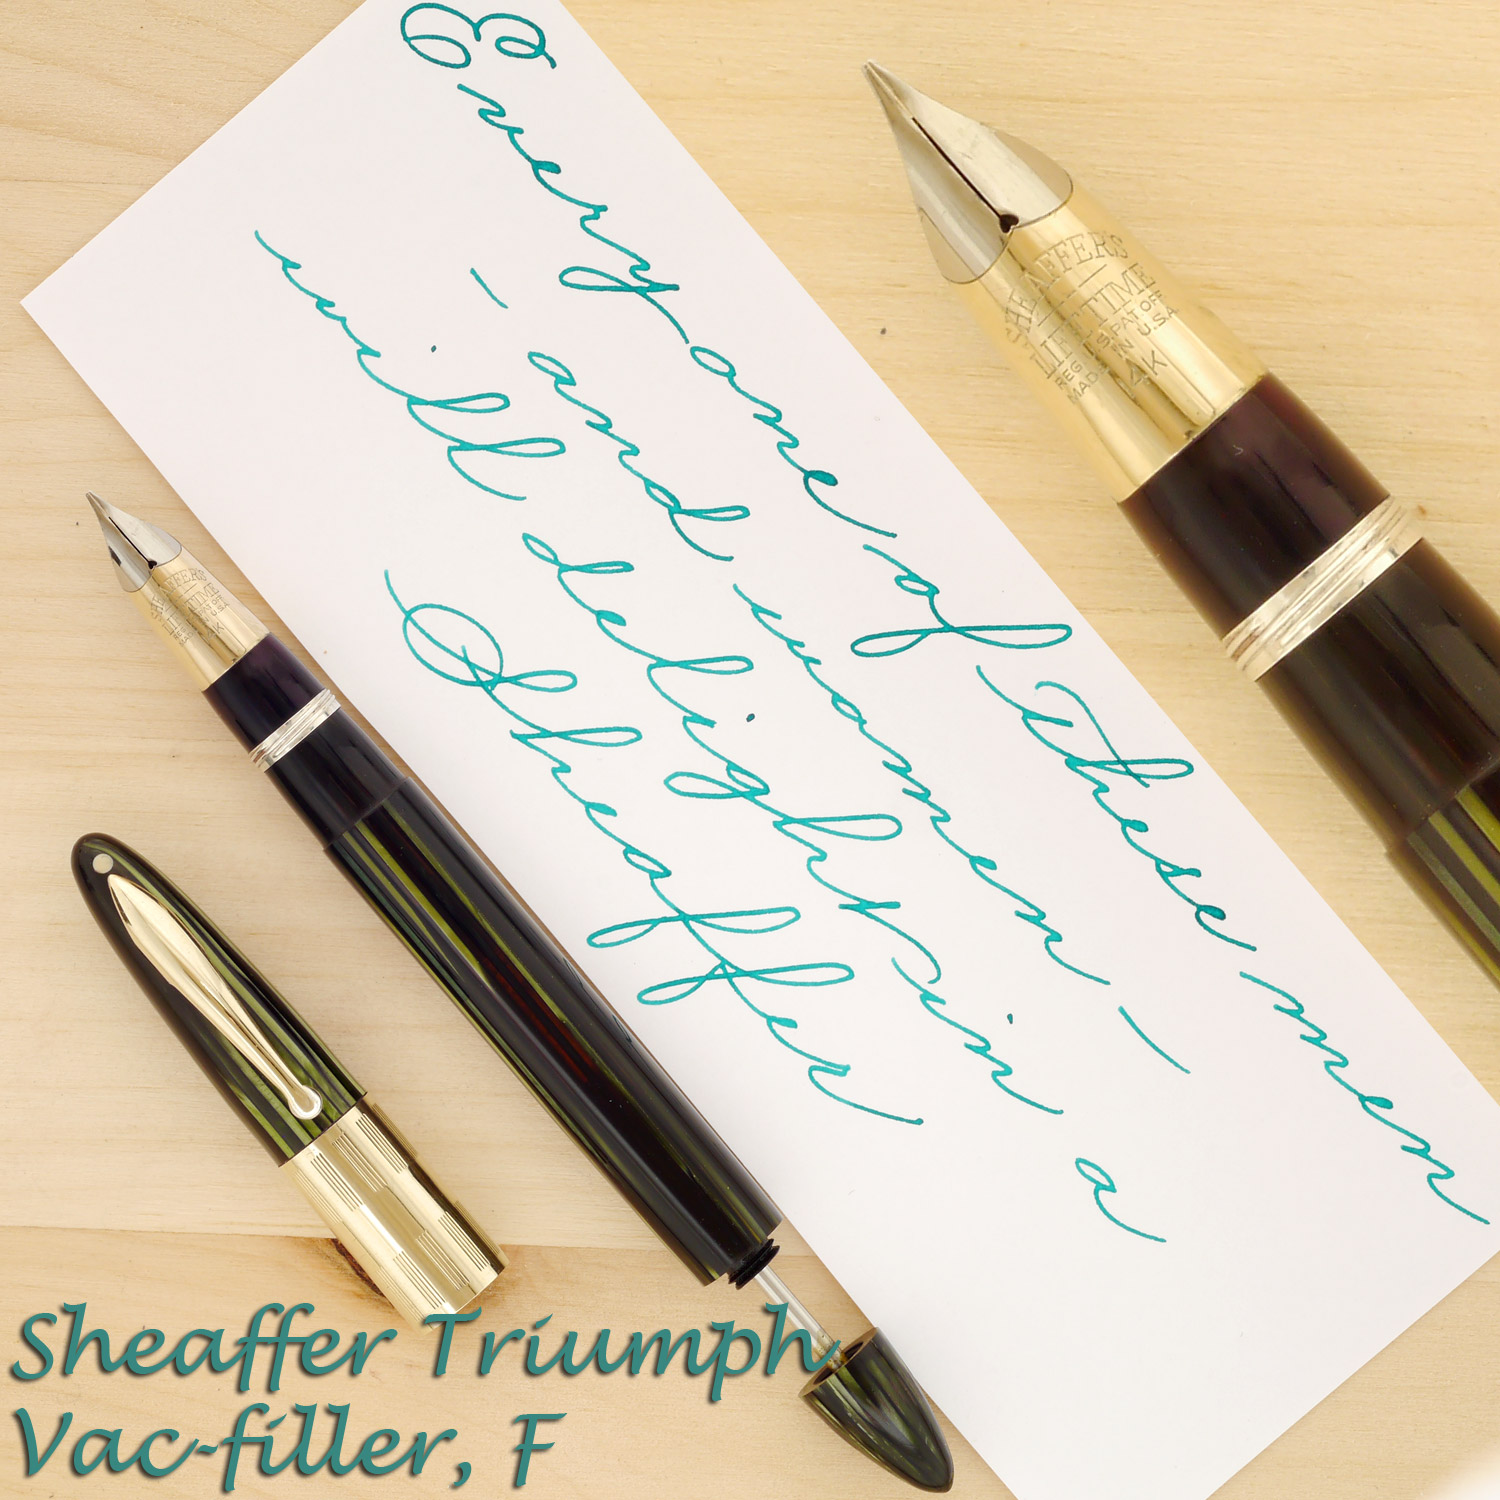 Sheaffer Triumph Vac 1250 in Marine Green, F, with the cap off and plunger rod partially extended